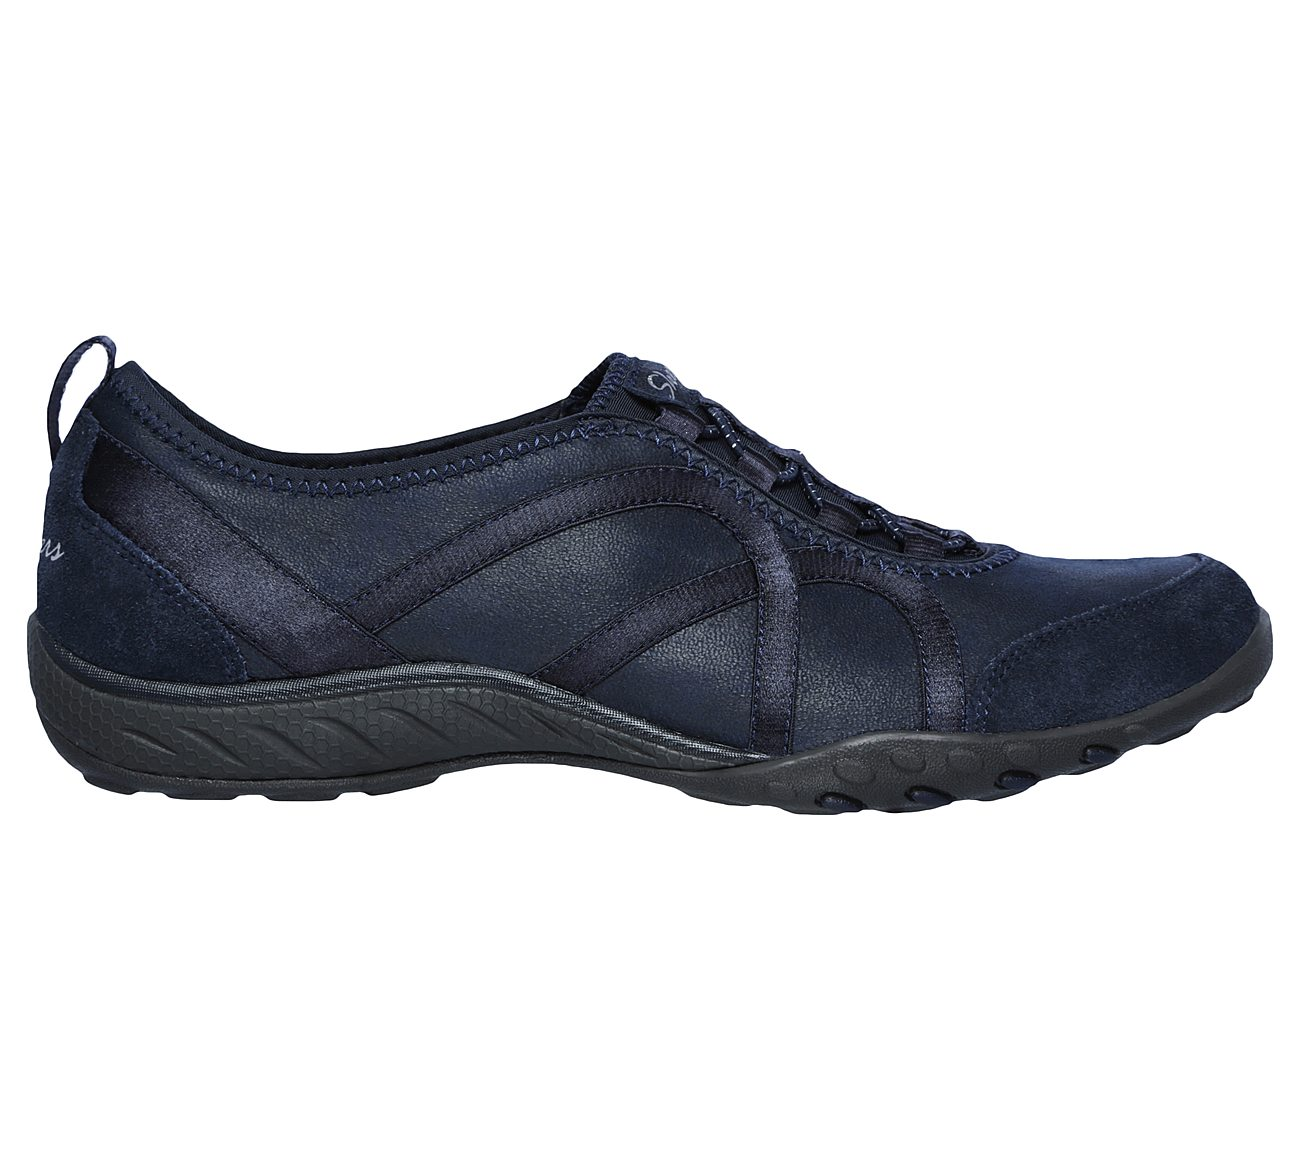 Skechers Relaxed Fit Breathe ... Easy Flawless Look Women's Shoes a6XdkkW